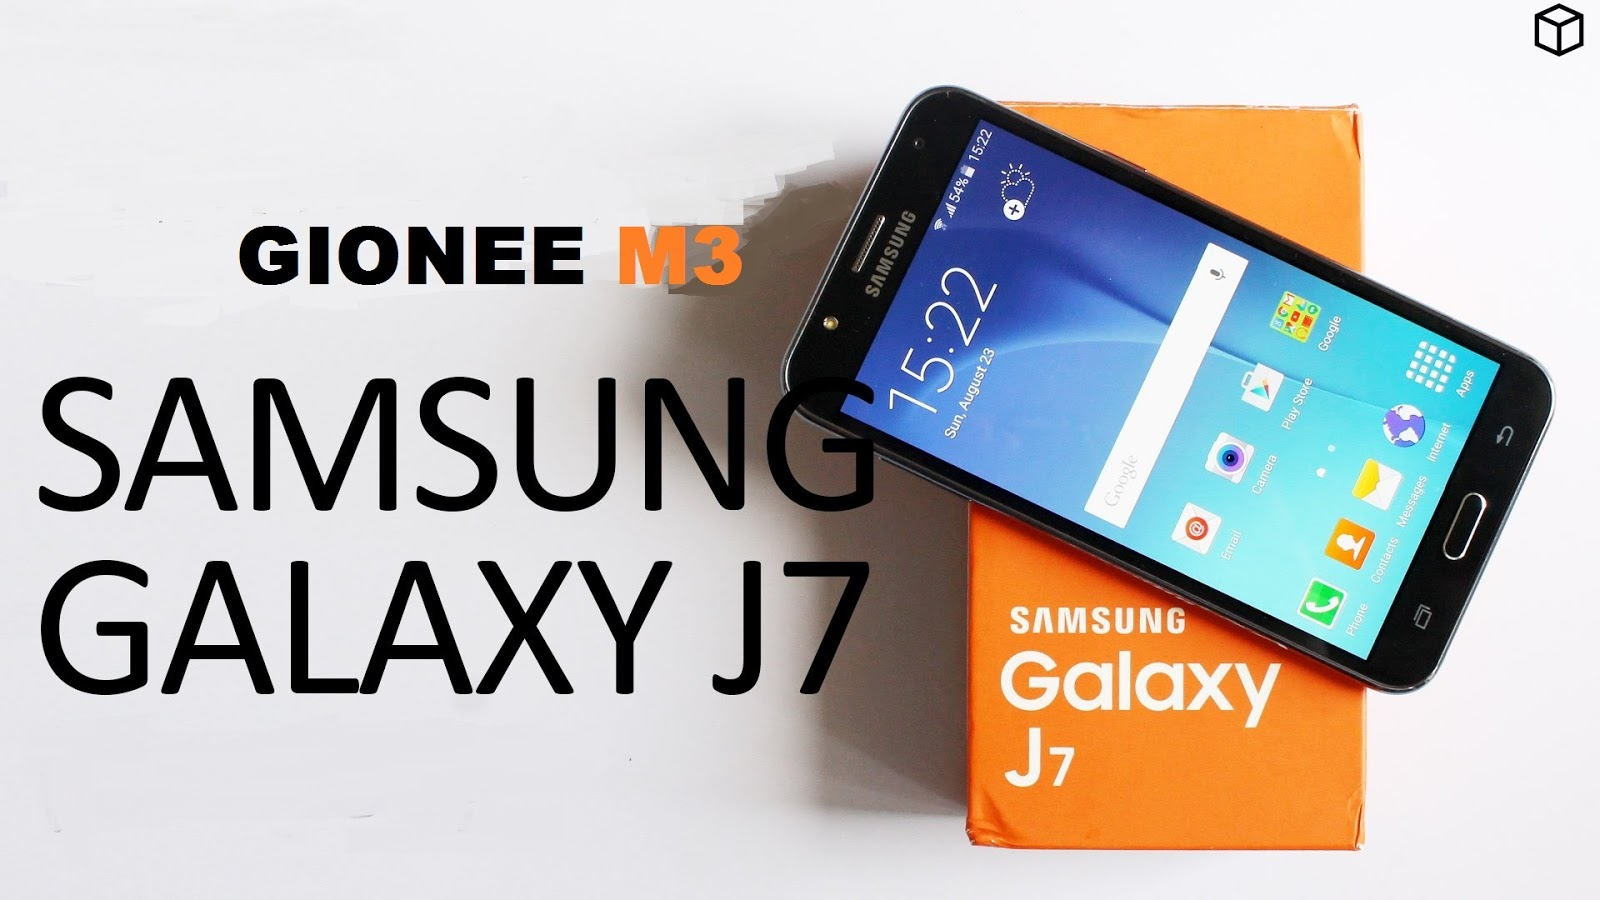 ROM][MT6582][3 10 54+][5 1]SAMSUNG GALEXY J7 OS FOR GIONEE M3 BY